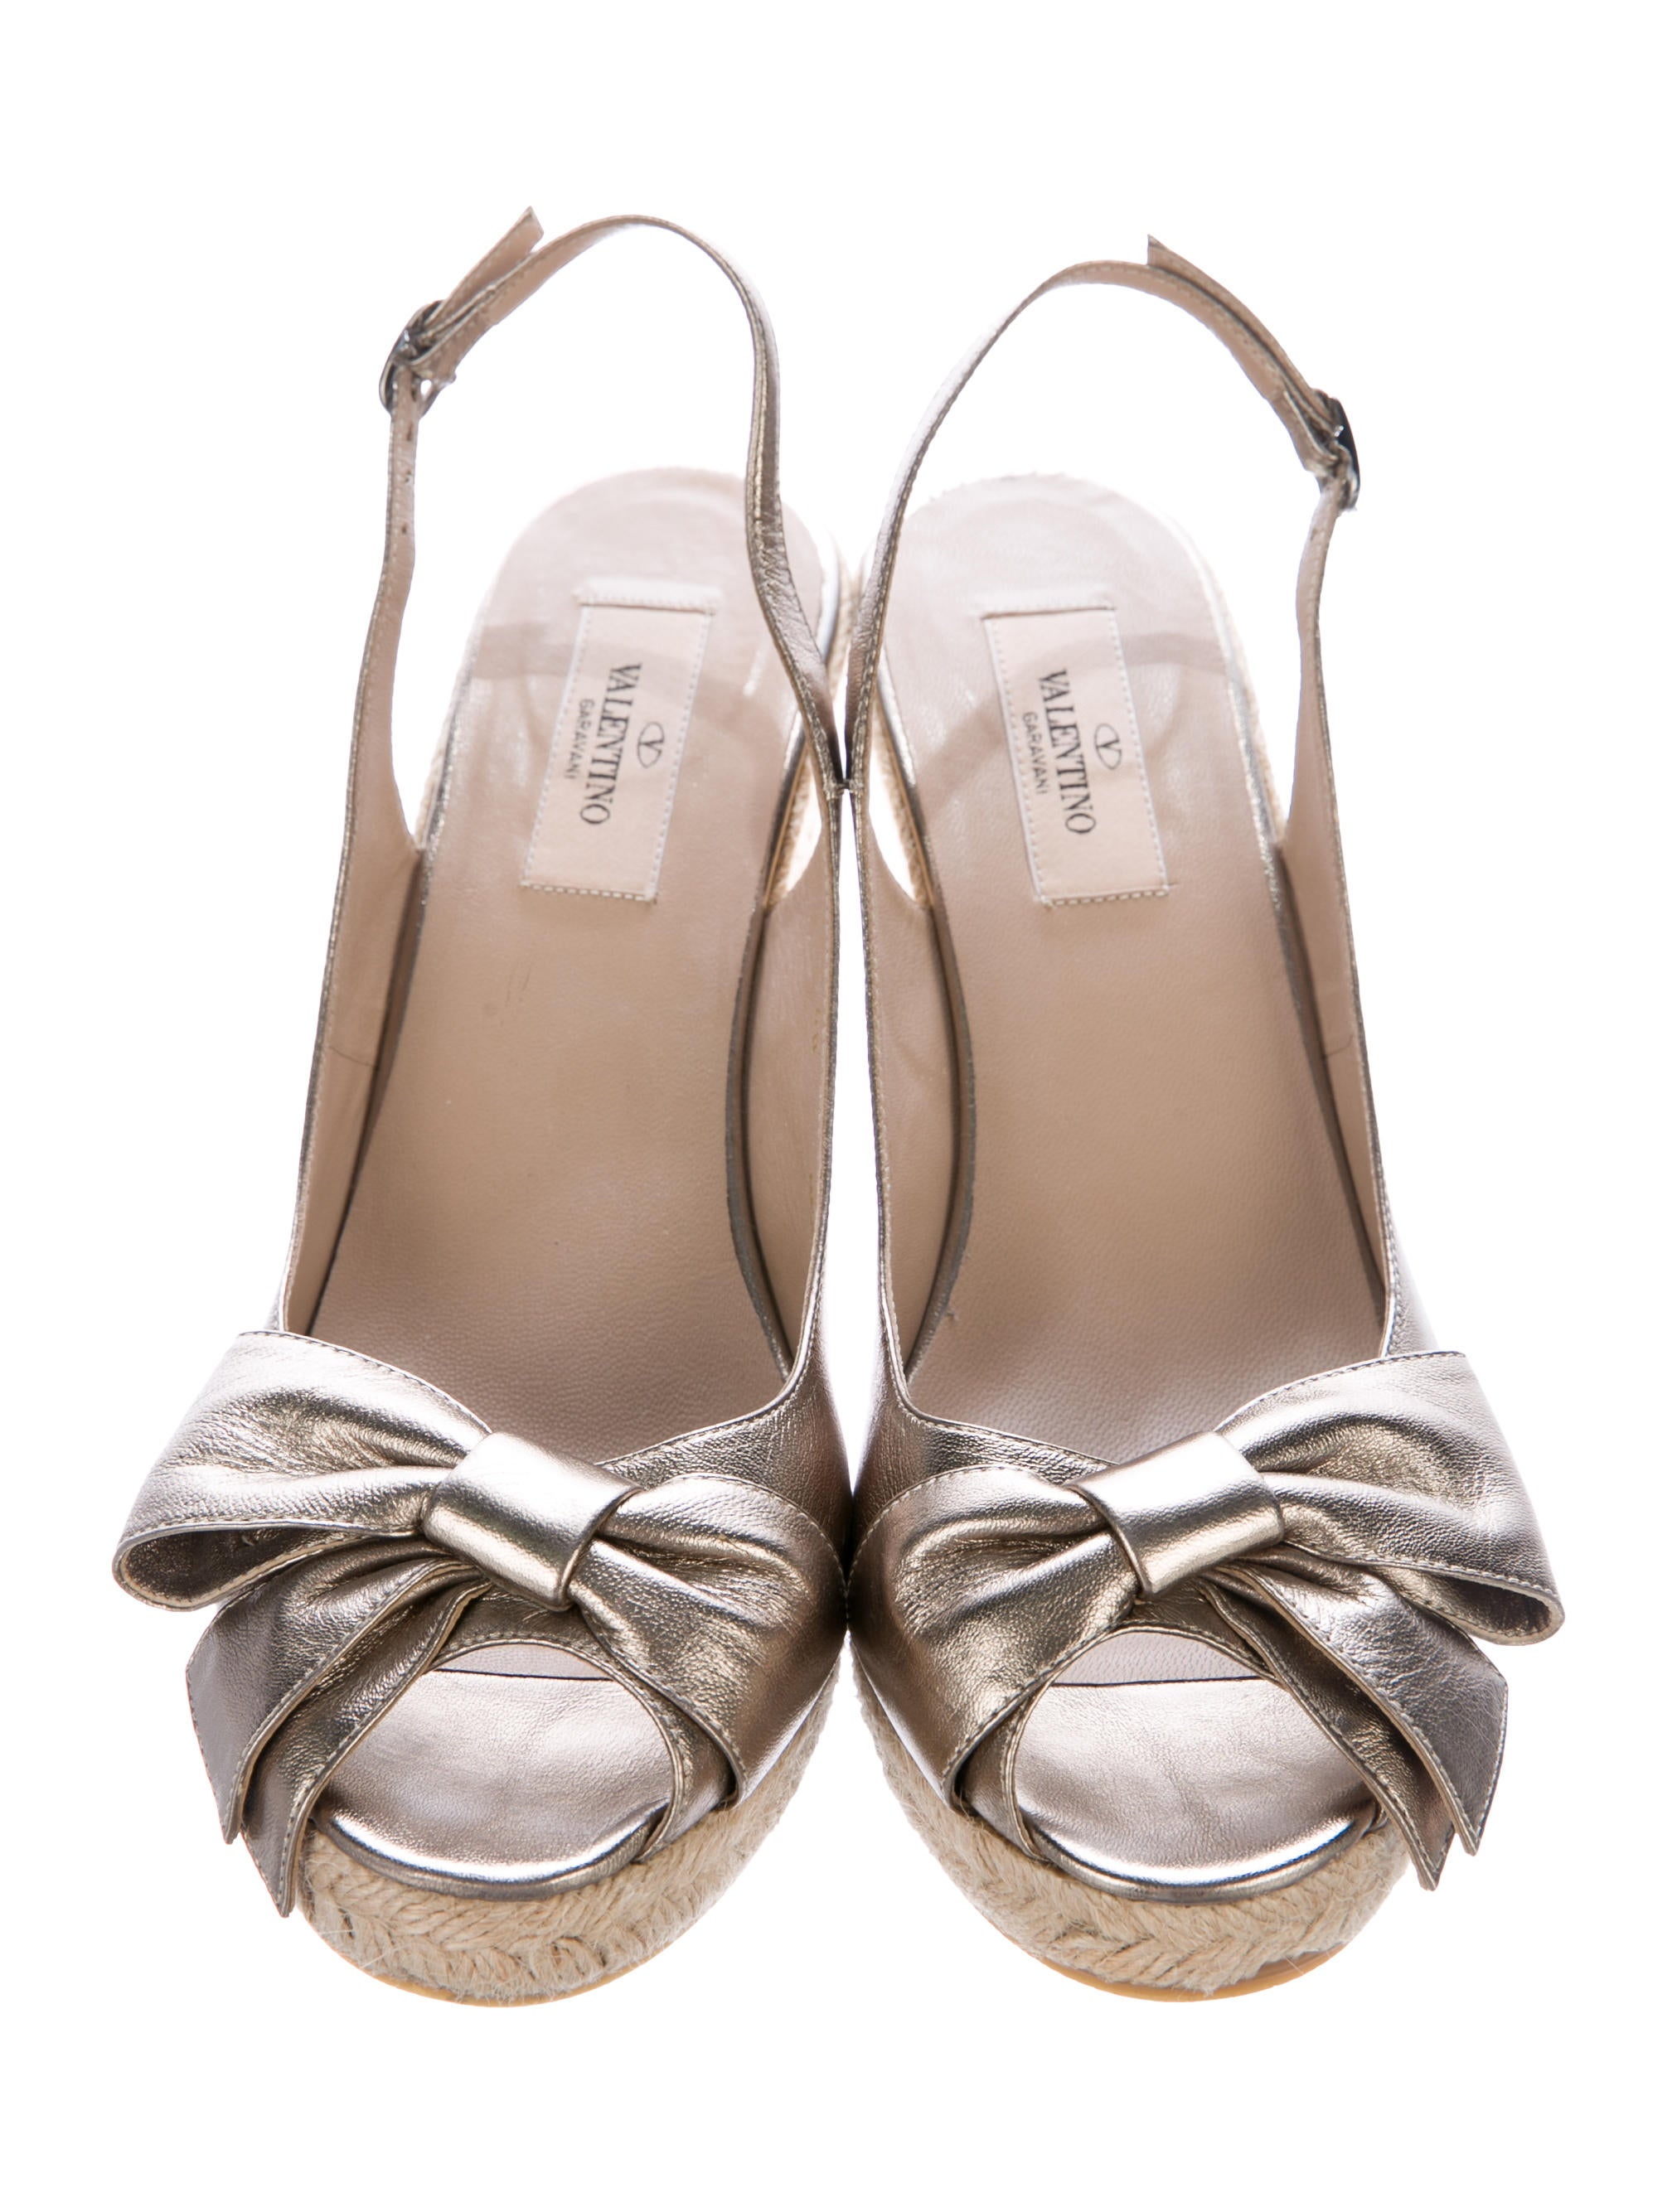 Valentino Metallic Bow-Accented Espadrilles really cheap free shipping pay with paypal buy cheap the cheapest bD0VTV